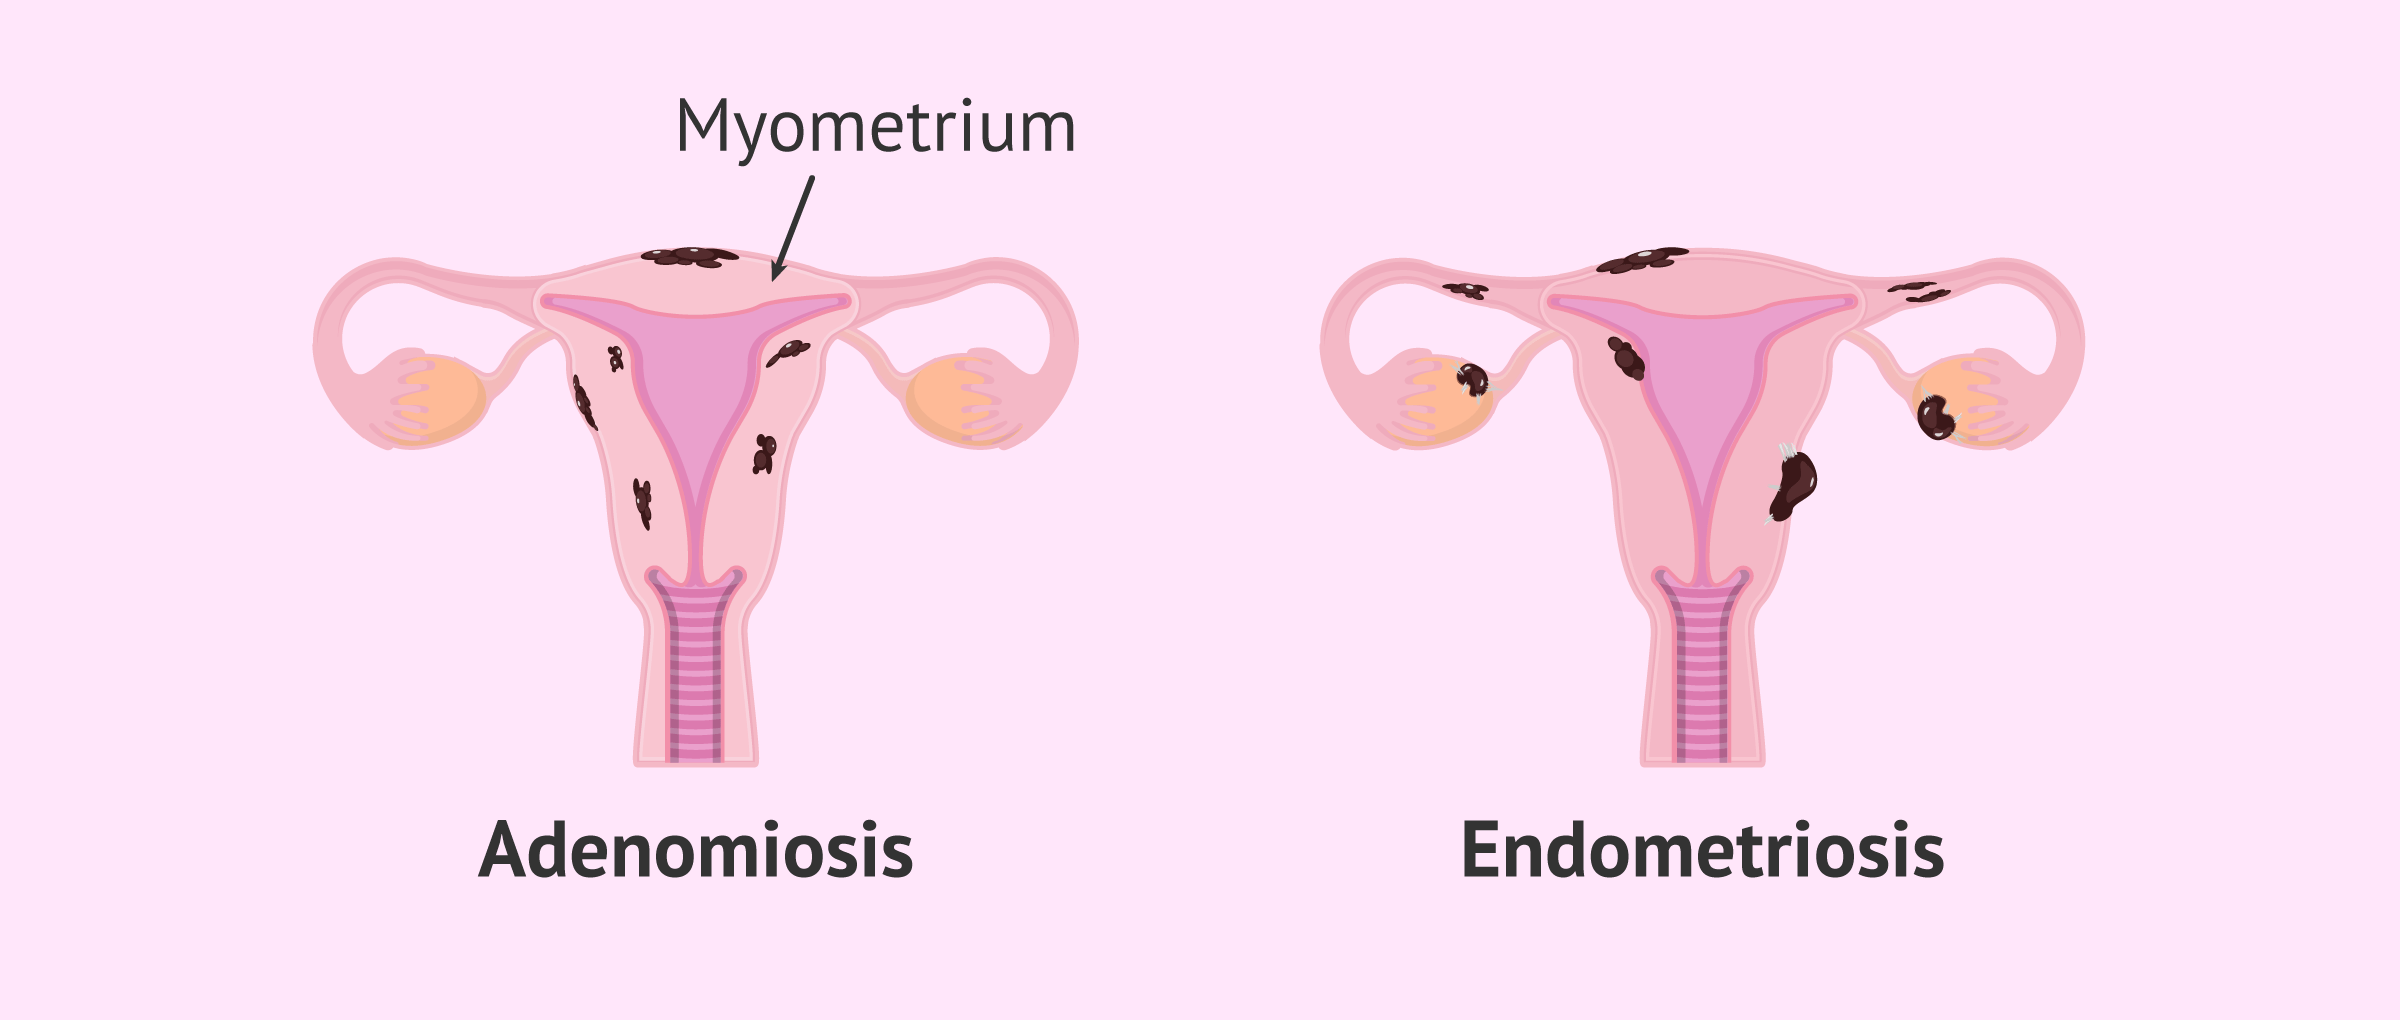 Uterus with adenomyosis and uterus with endometriosis